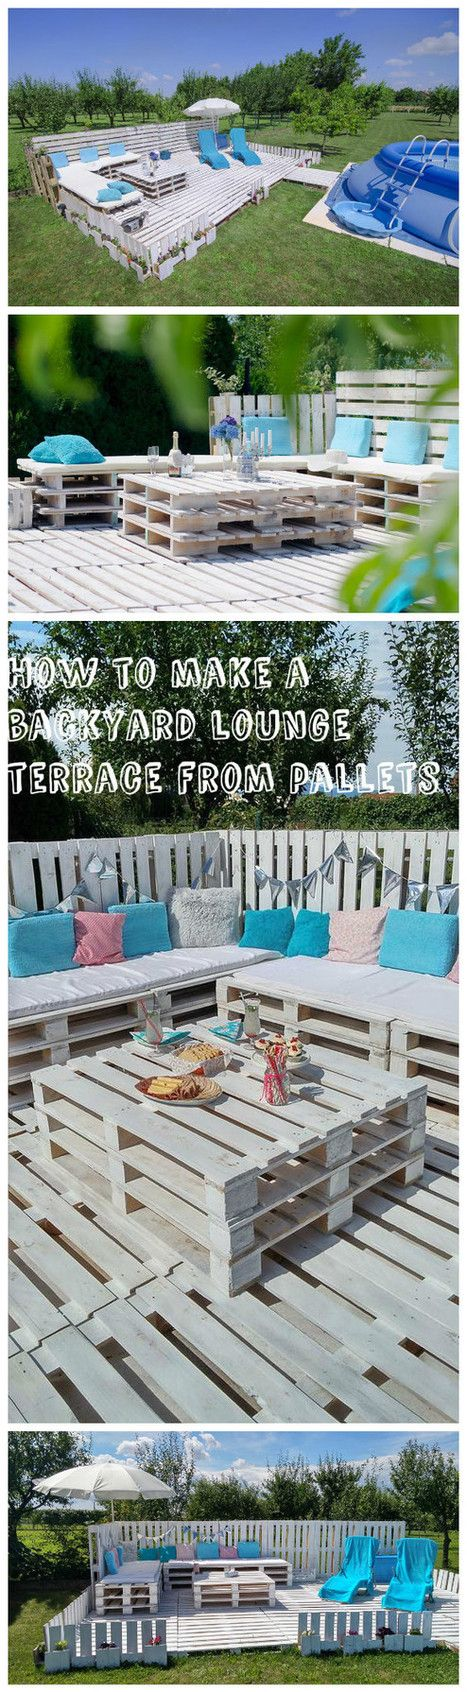 The Backyard Lounge/Party Terrace You Need For Your 2016 Summer | 1001 Pallets ideas ! | Scoop.it